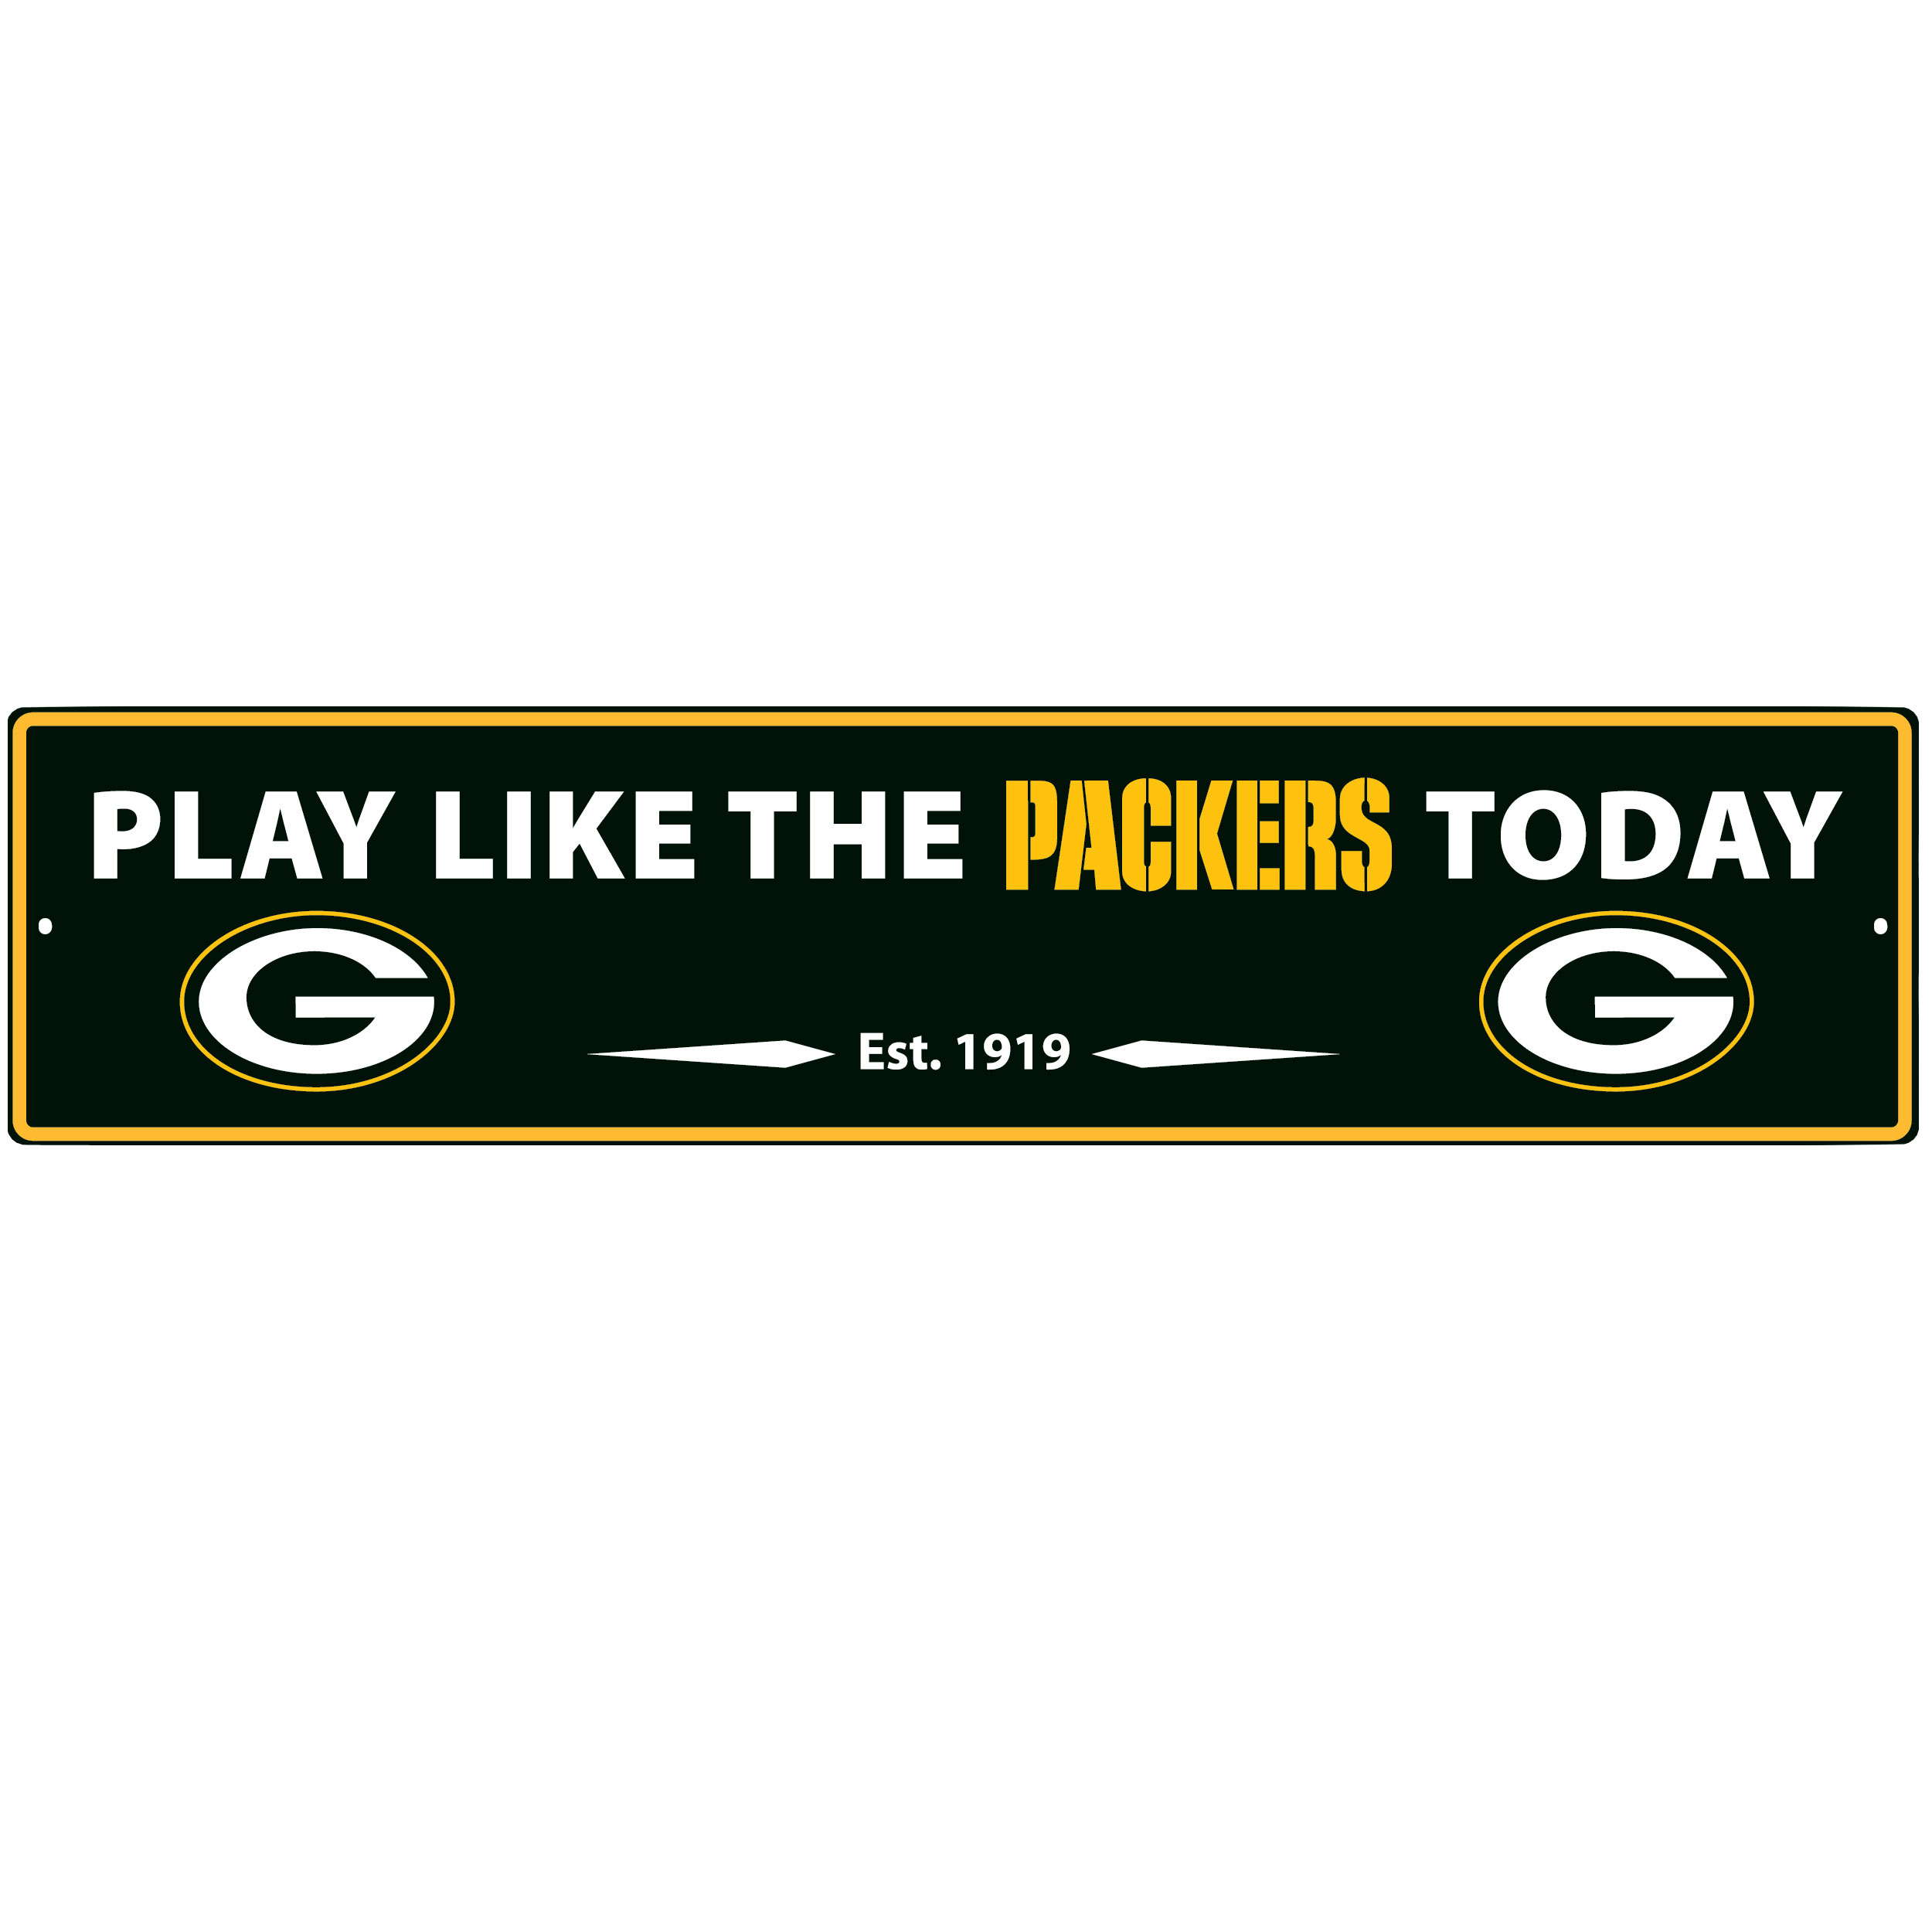 Green Bay Packers Street Sign Wall Plaque - This motivational plaque is perfect for hanging over the doorway of your fan cave reminding you to play like your champion Green Bay Packers! The sign is 20 inches wide and made of light-weight stamped aluminum. The bright team colors and classic design make this a must-have home décor accessory that would look great in any game room, living room or office!